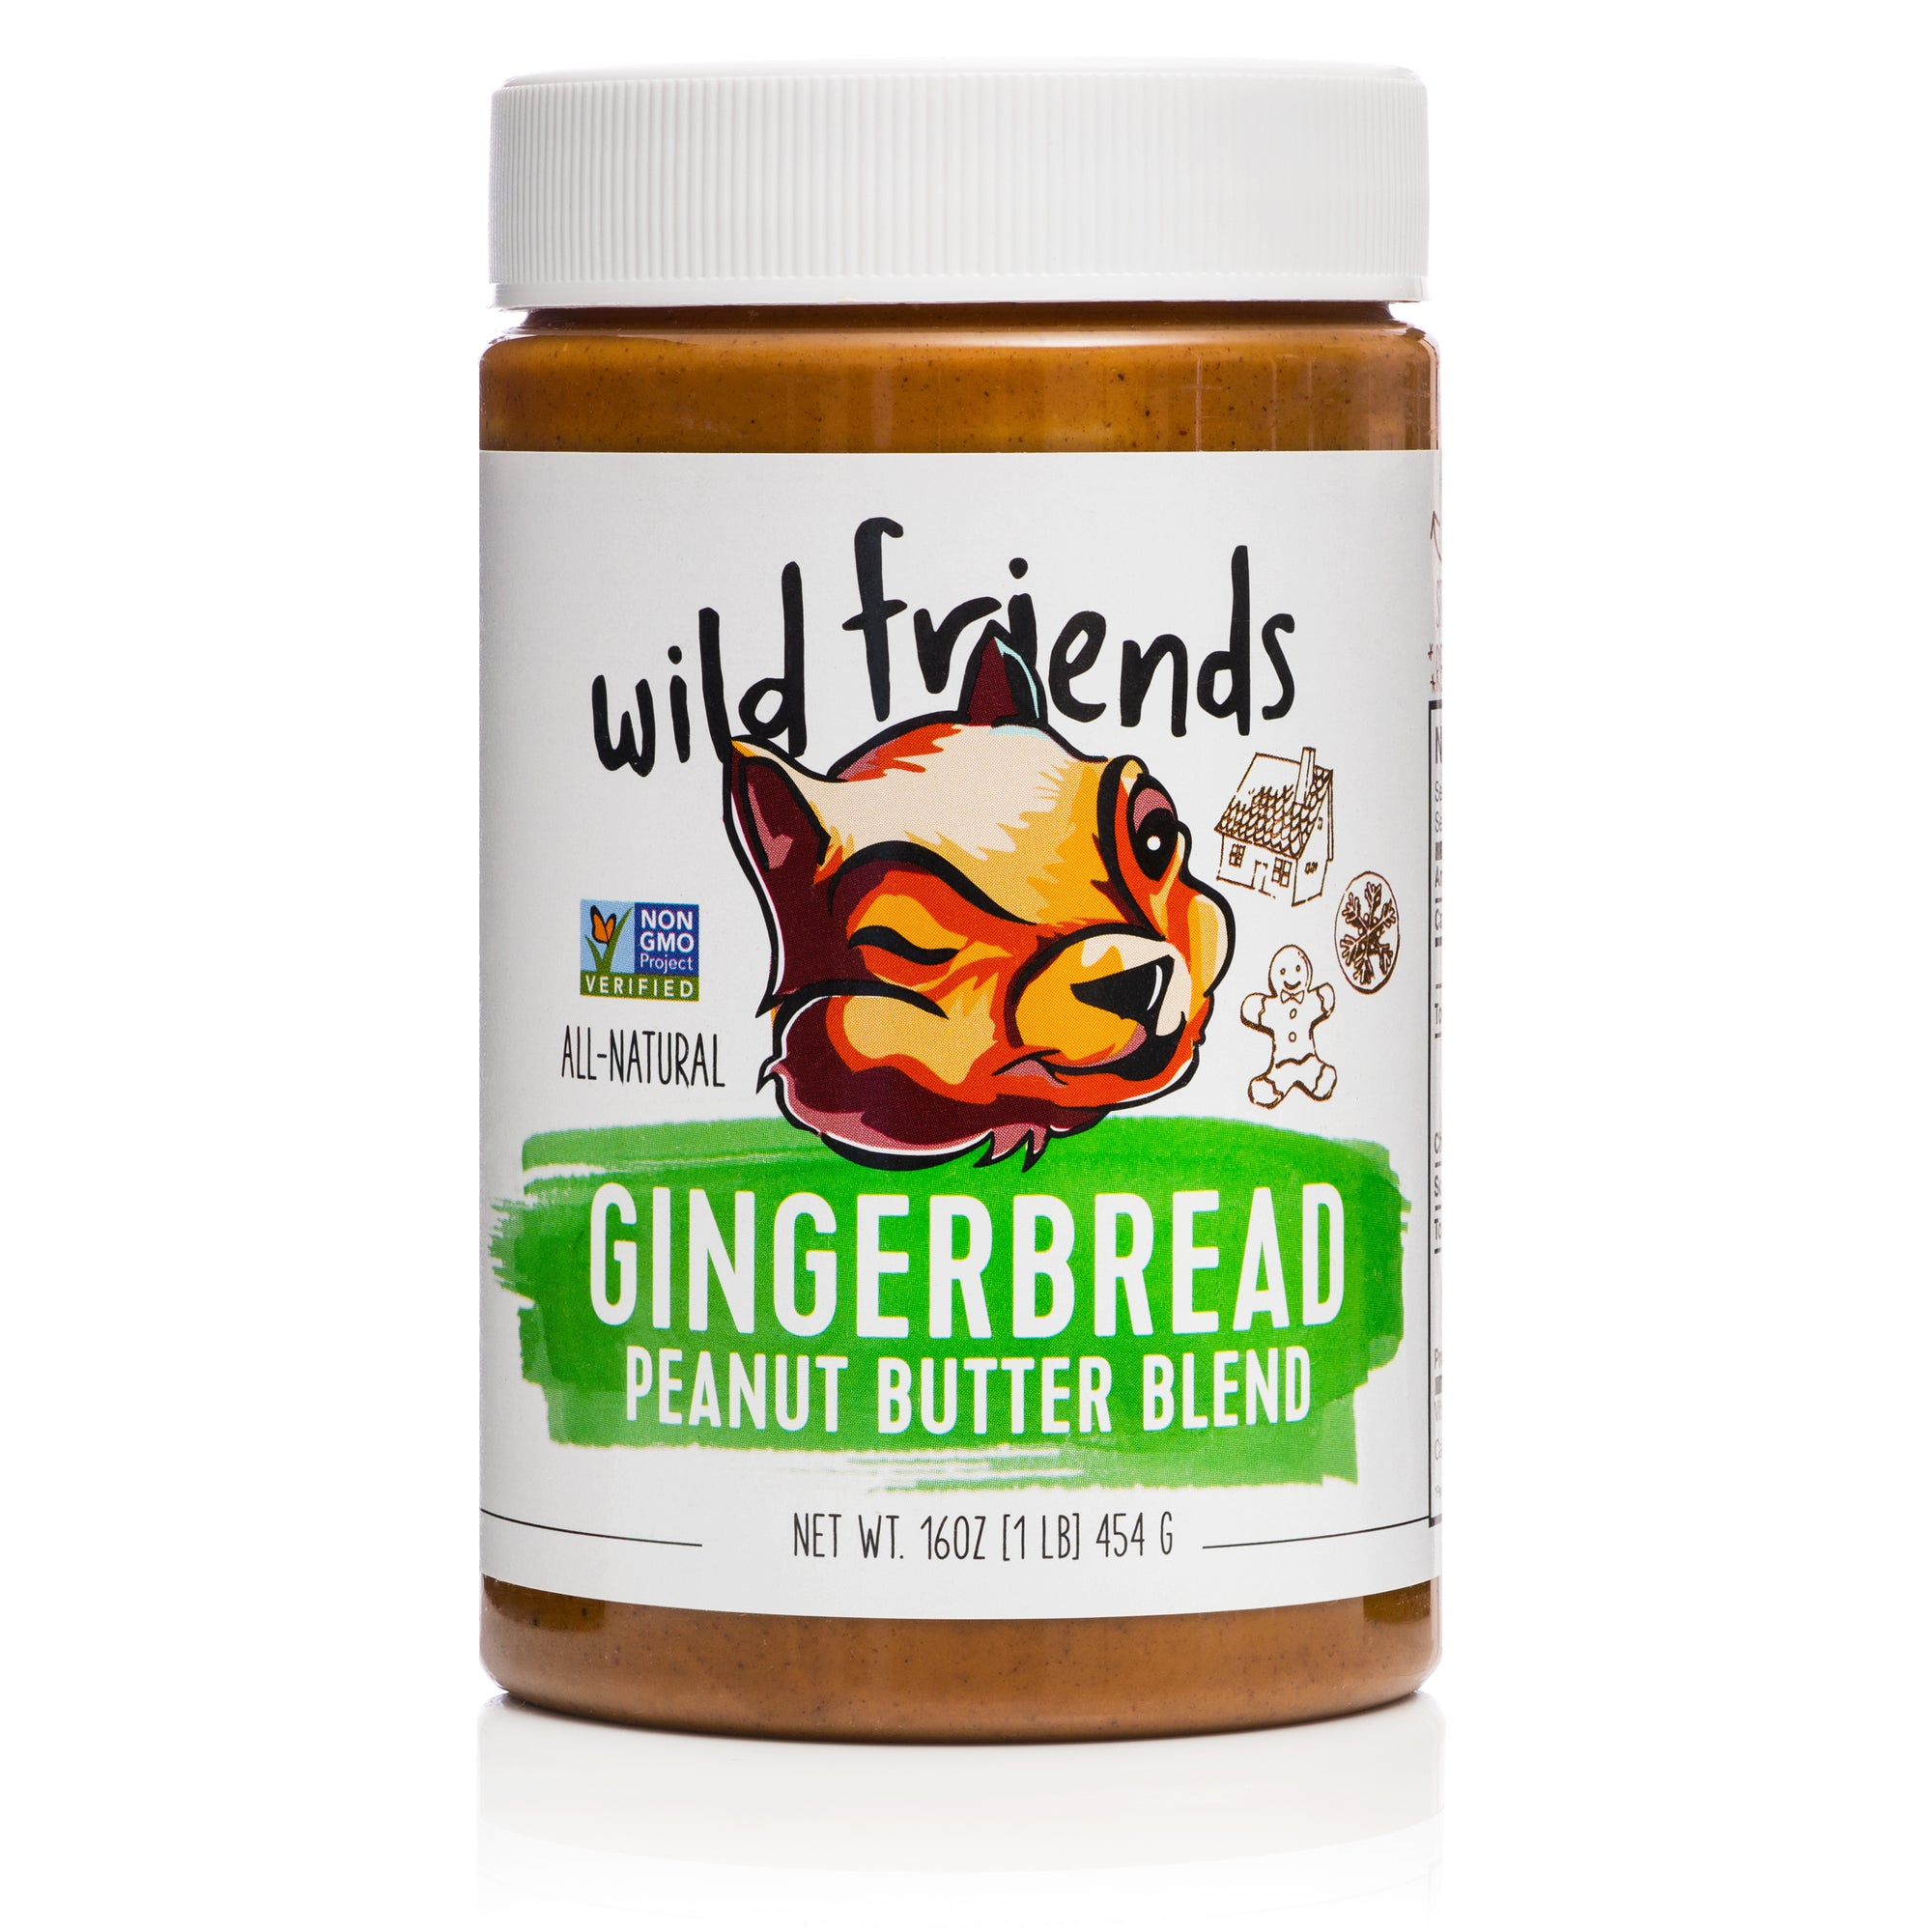 3-Pack Gingerbread Peanut Butter